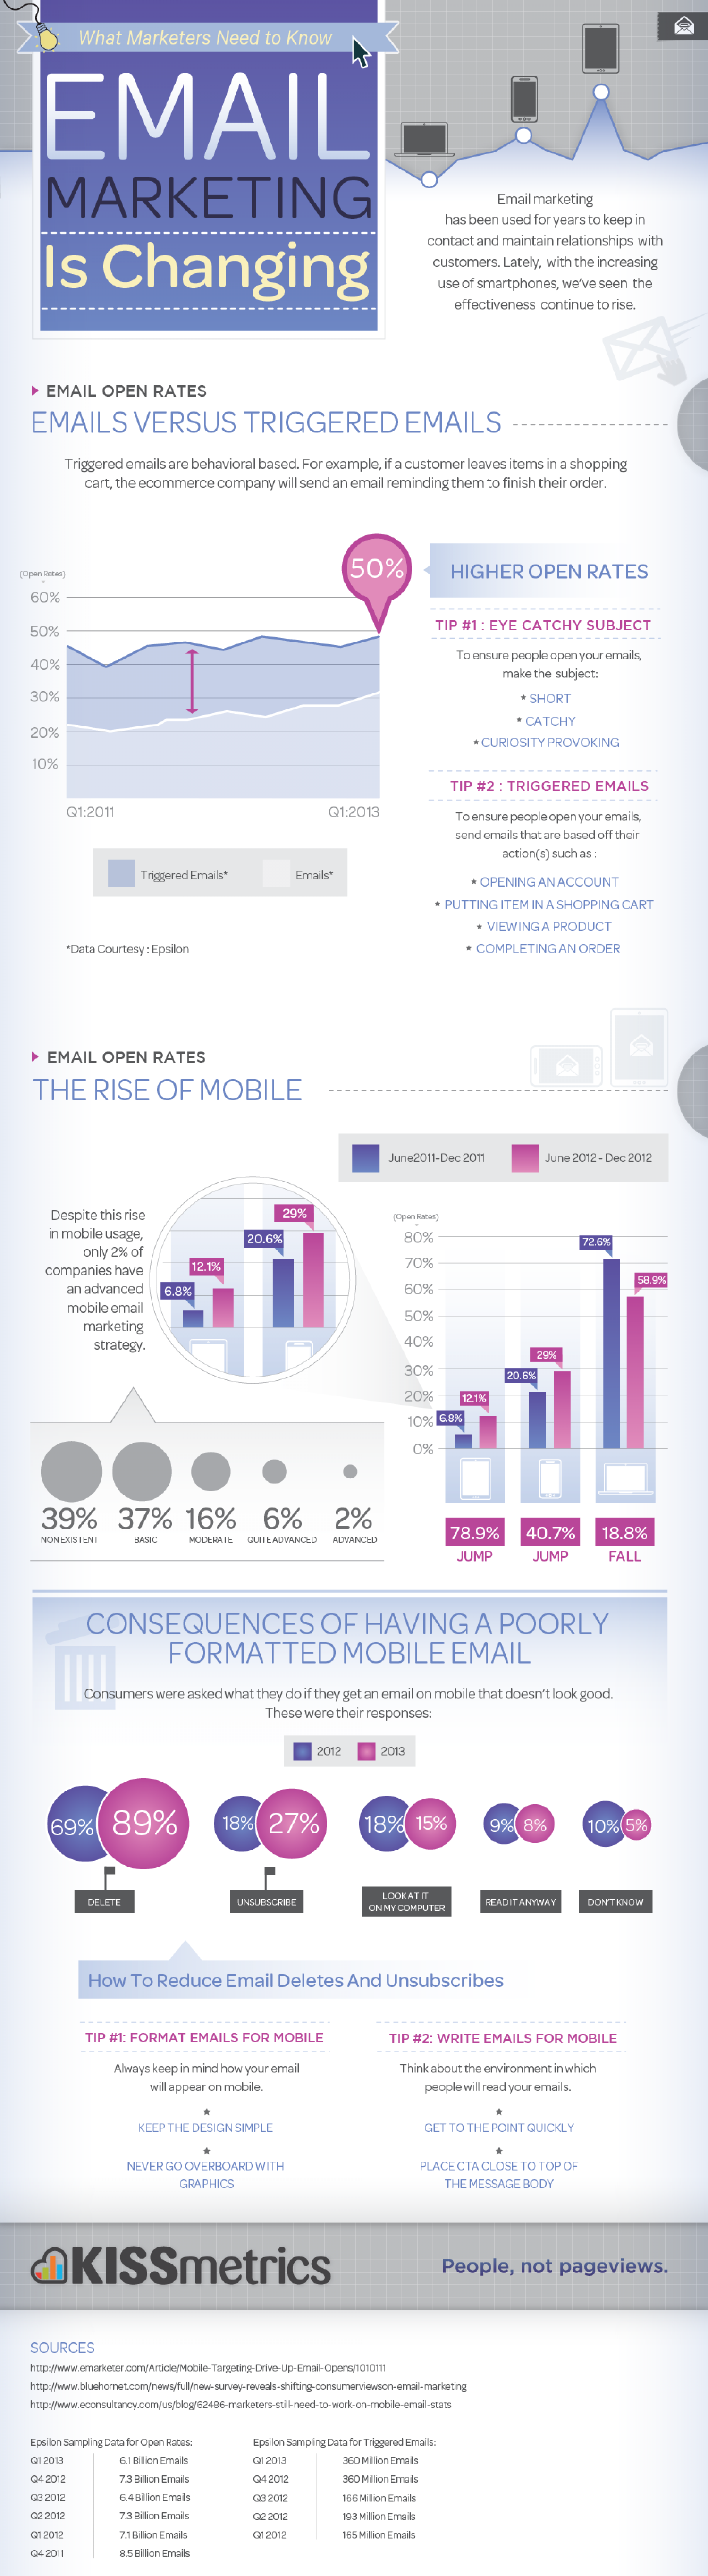 Email Marketing is Changing - The Rise of Mobile and Triggered Emails Infographic